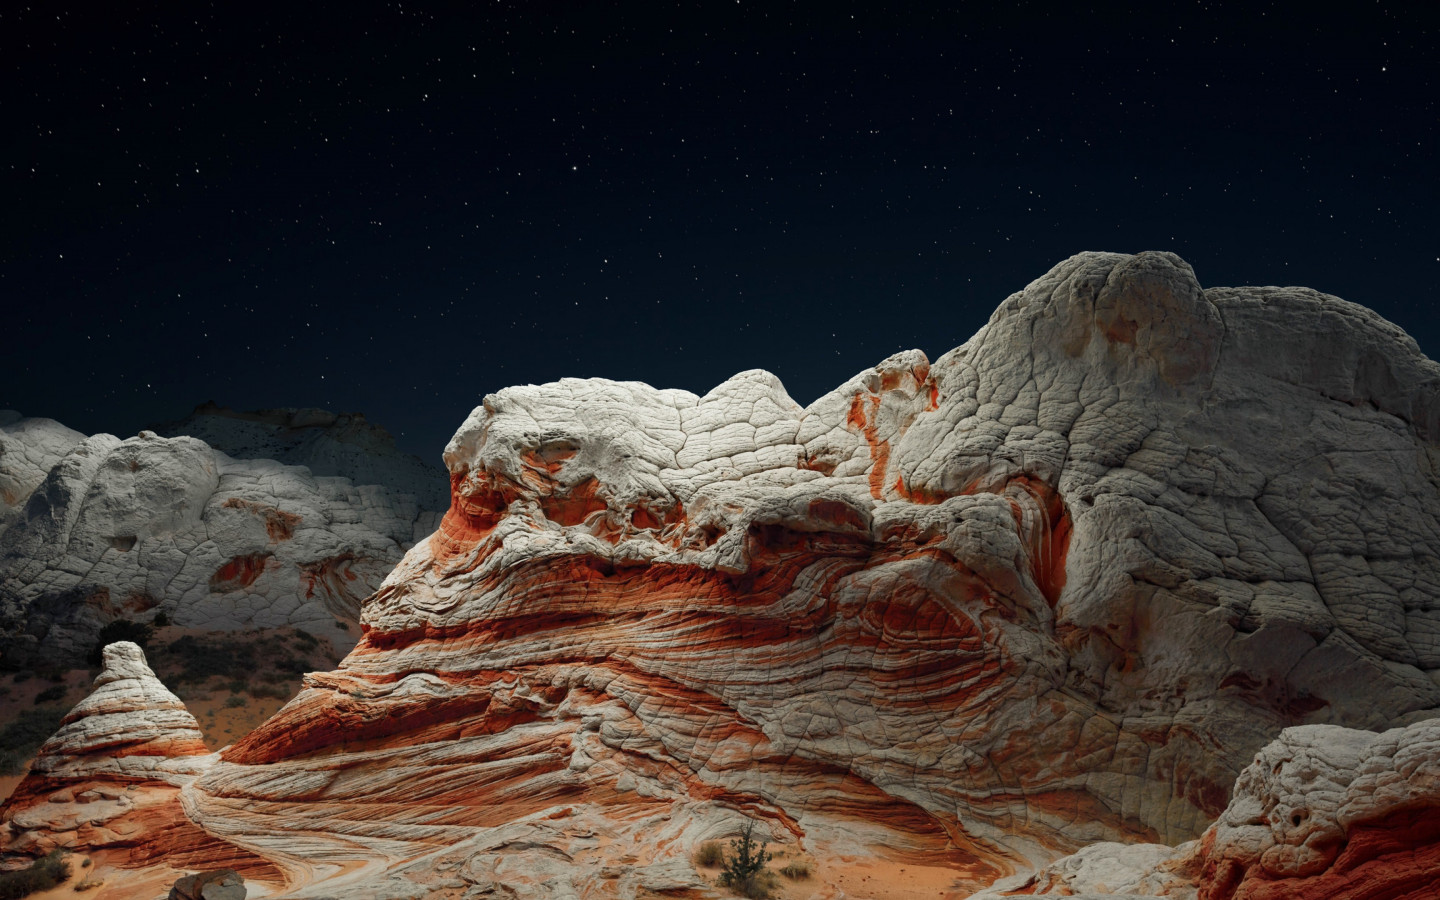 The night sky and desert valley wallpaper 1440x900